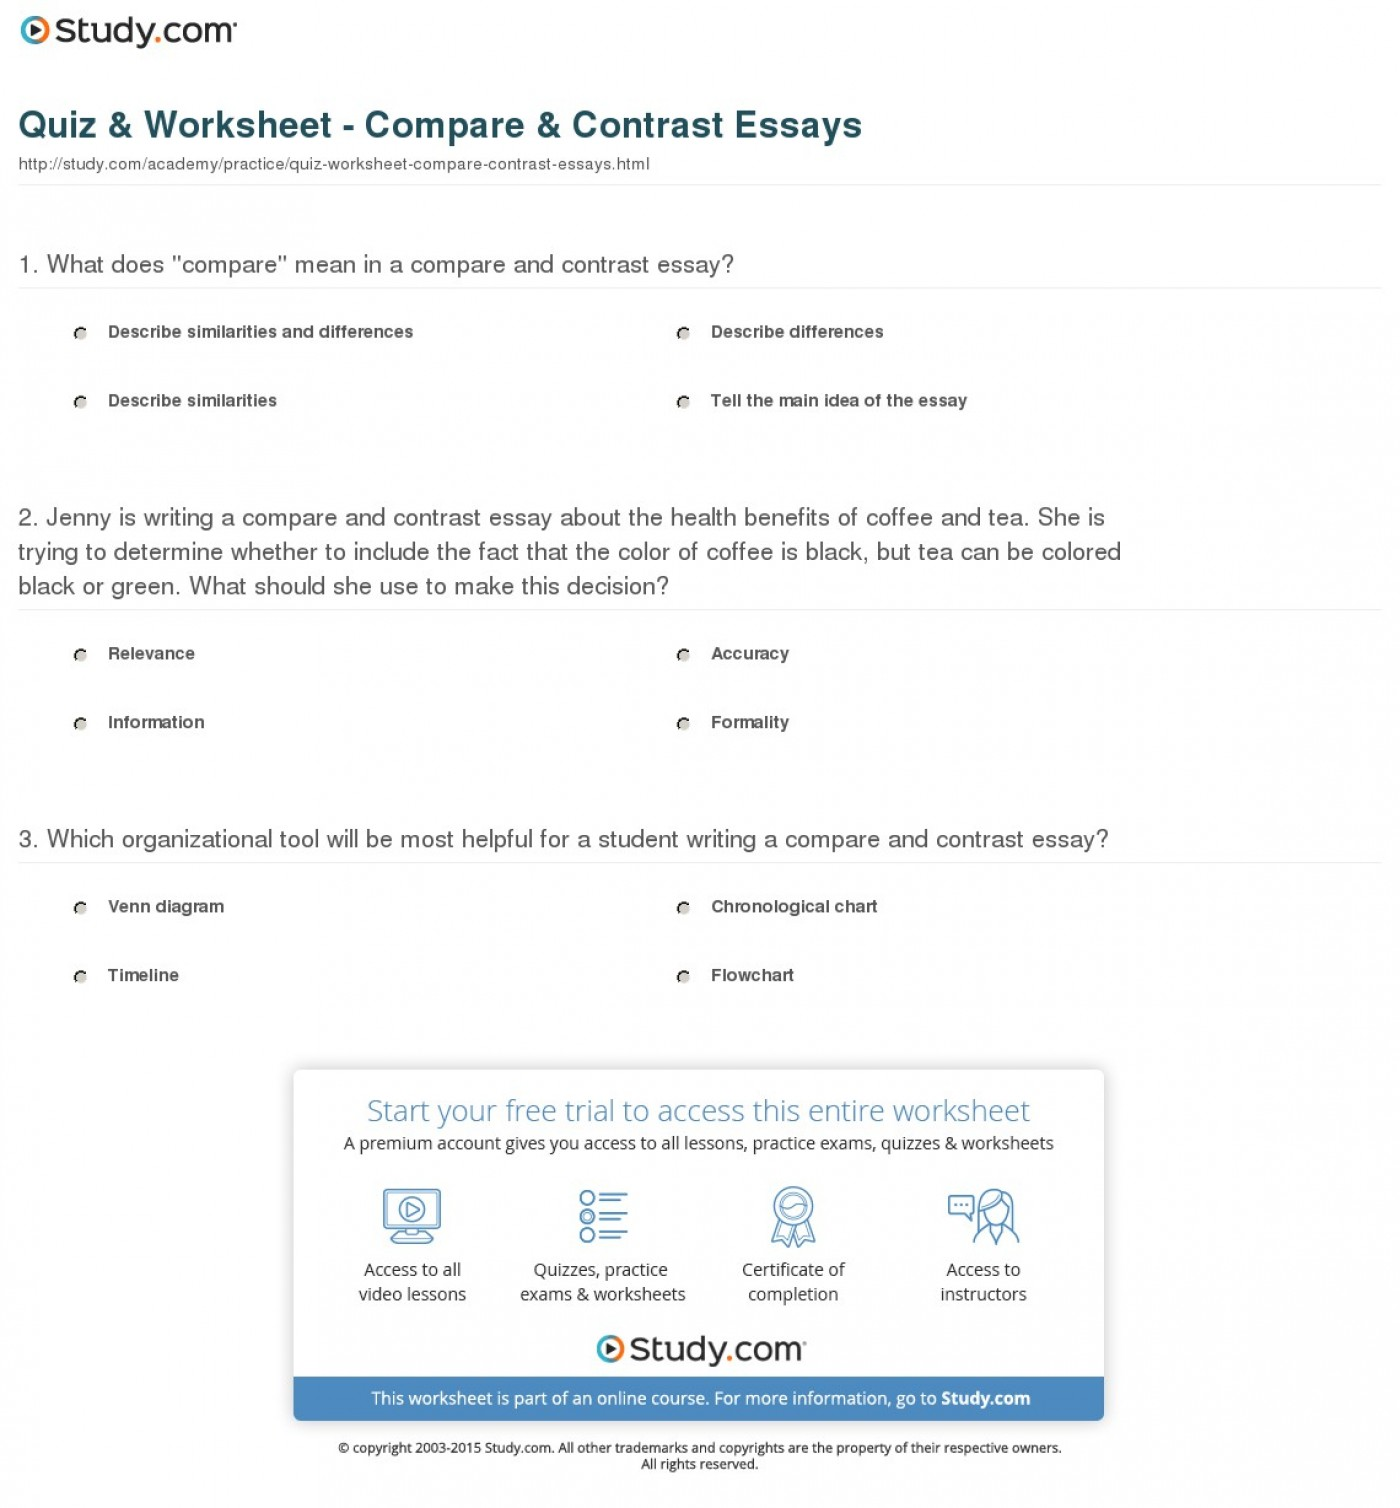 018 Comparison Contrast Essay Topics Quiz Worksheet Compare Essays Magnificent Ielts For Esl Students And Middle School 1400